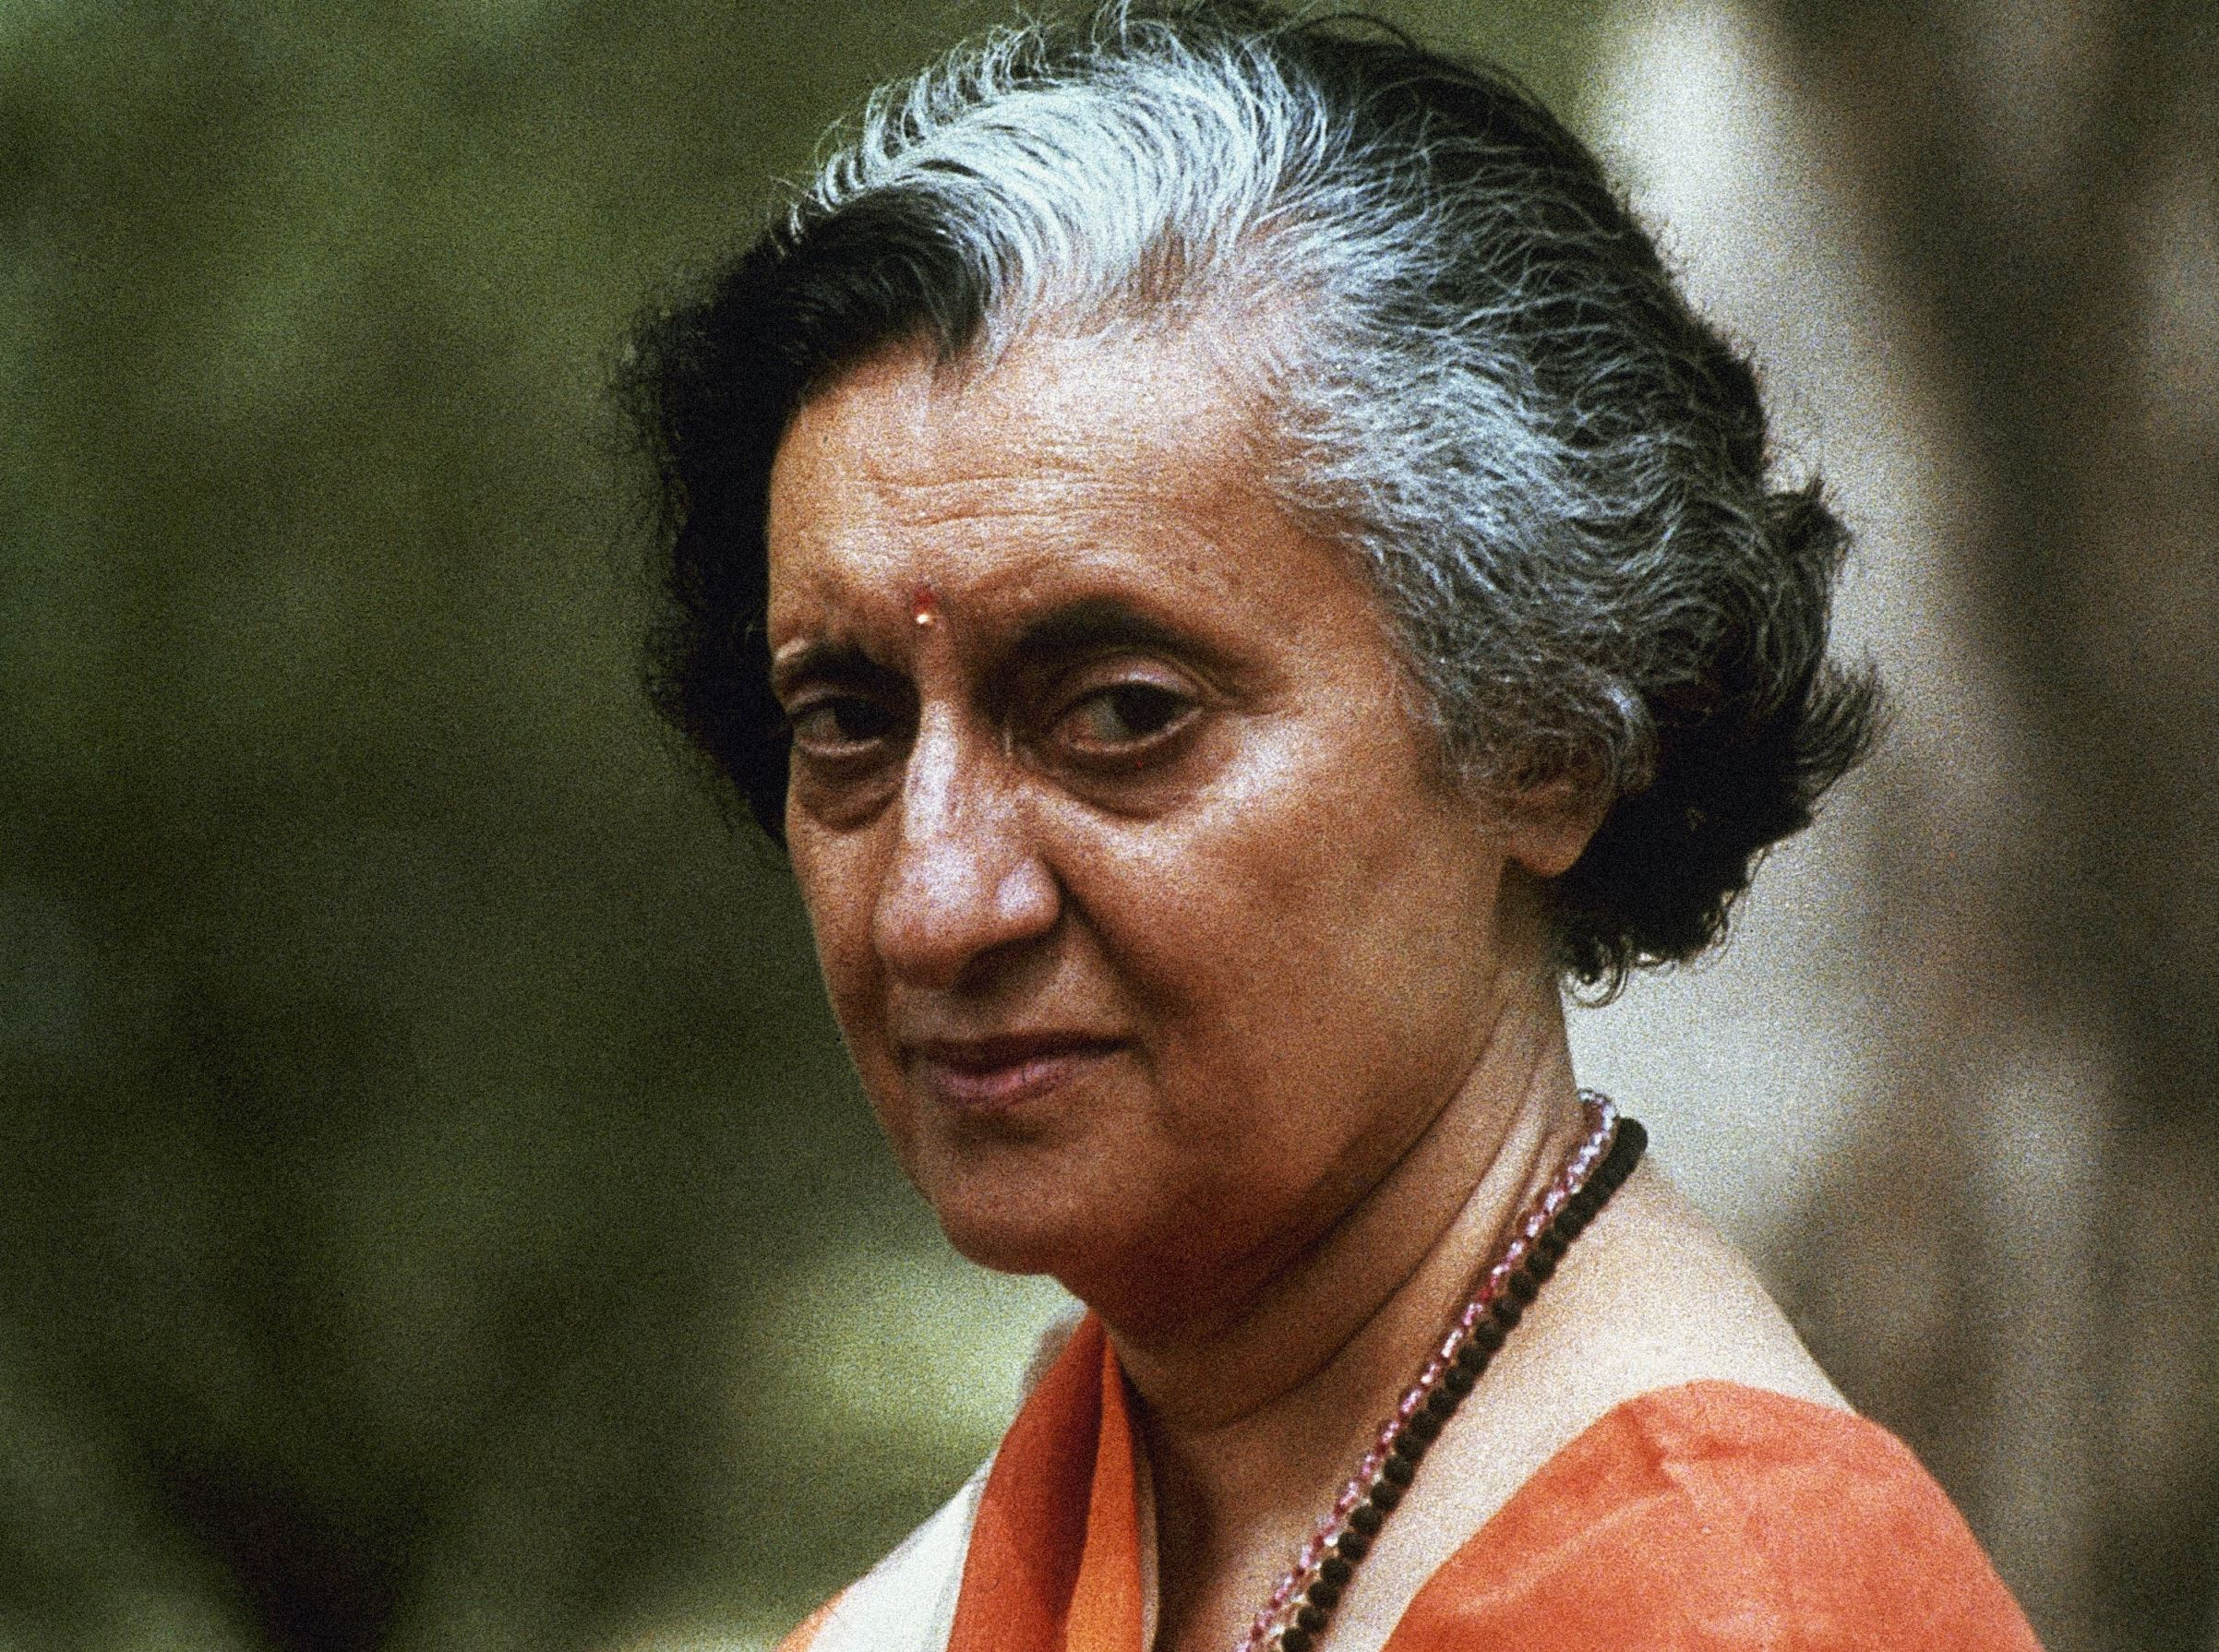 'Mrs G' was India's third prime minister, serving from 1966 until 1984, when her life ended in assassination. She was the second-longest-serving Prime Minister of India and the only woman to hold the office. She is credited with leading India in 1971 Indo-Pak war.